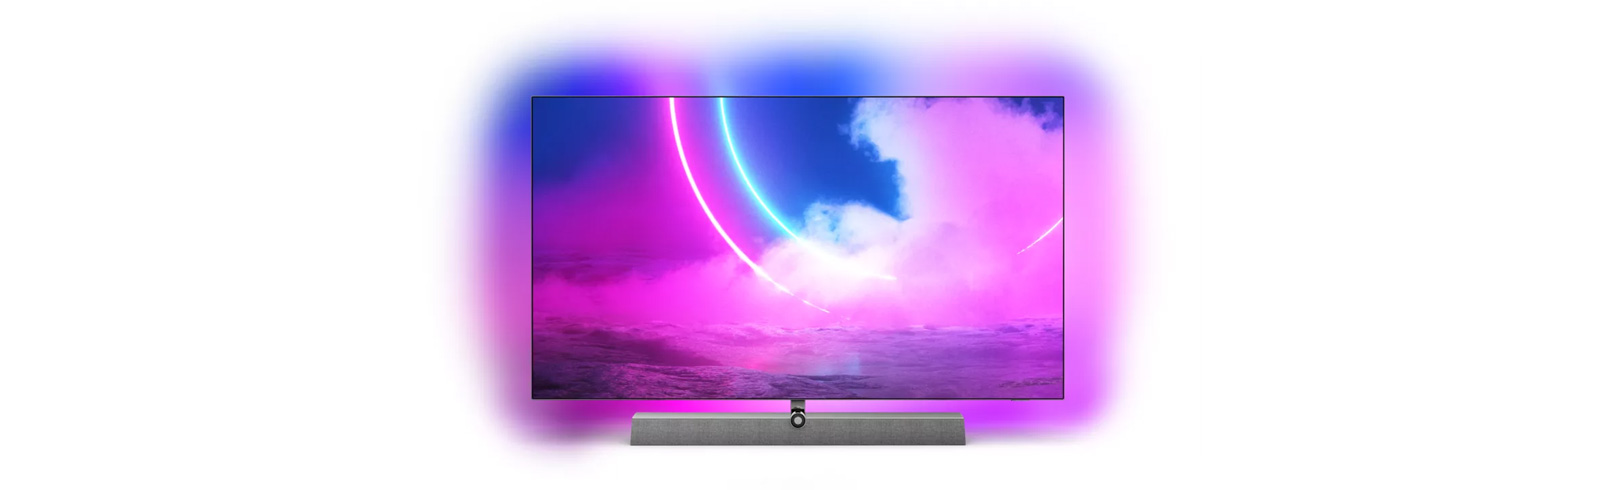 Philips OLED935 series unveiled - 65OLED935 and 55OLED935 with 4-sided Ambilight